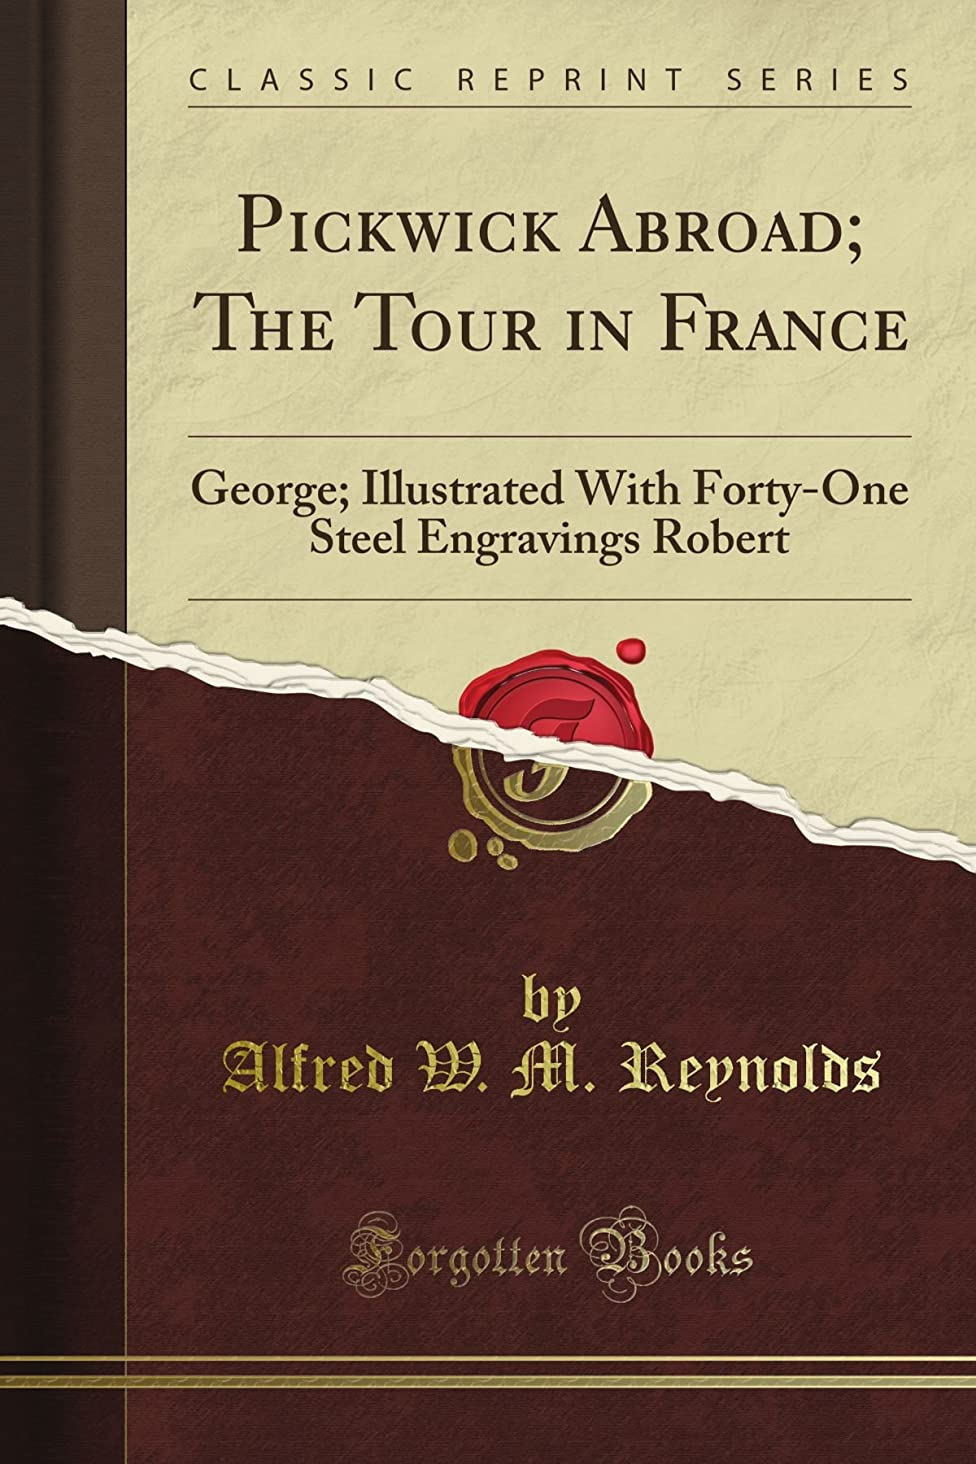 コンサルタント公園太いPickwick Abroad; The Tour in France: George; Illustrated With Forty-One Steel Engravings Robert (Classic Reprint)